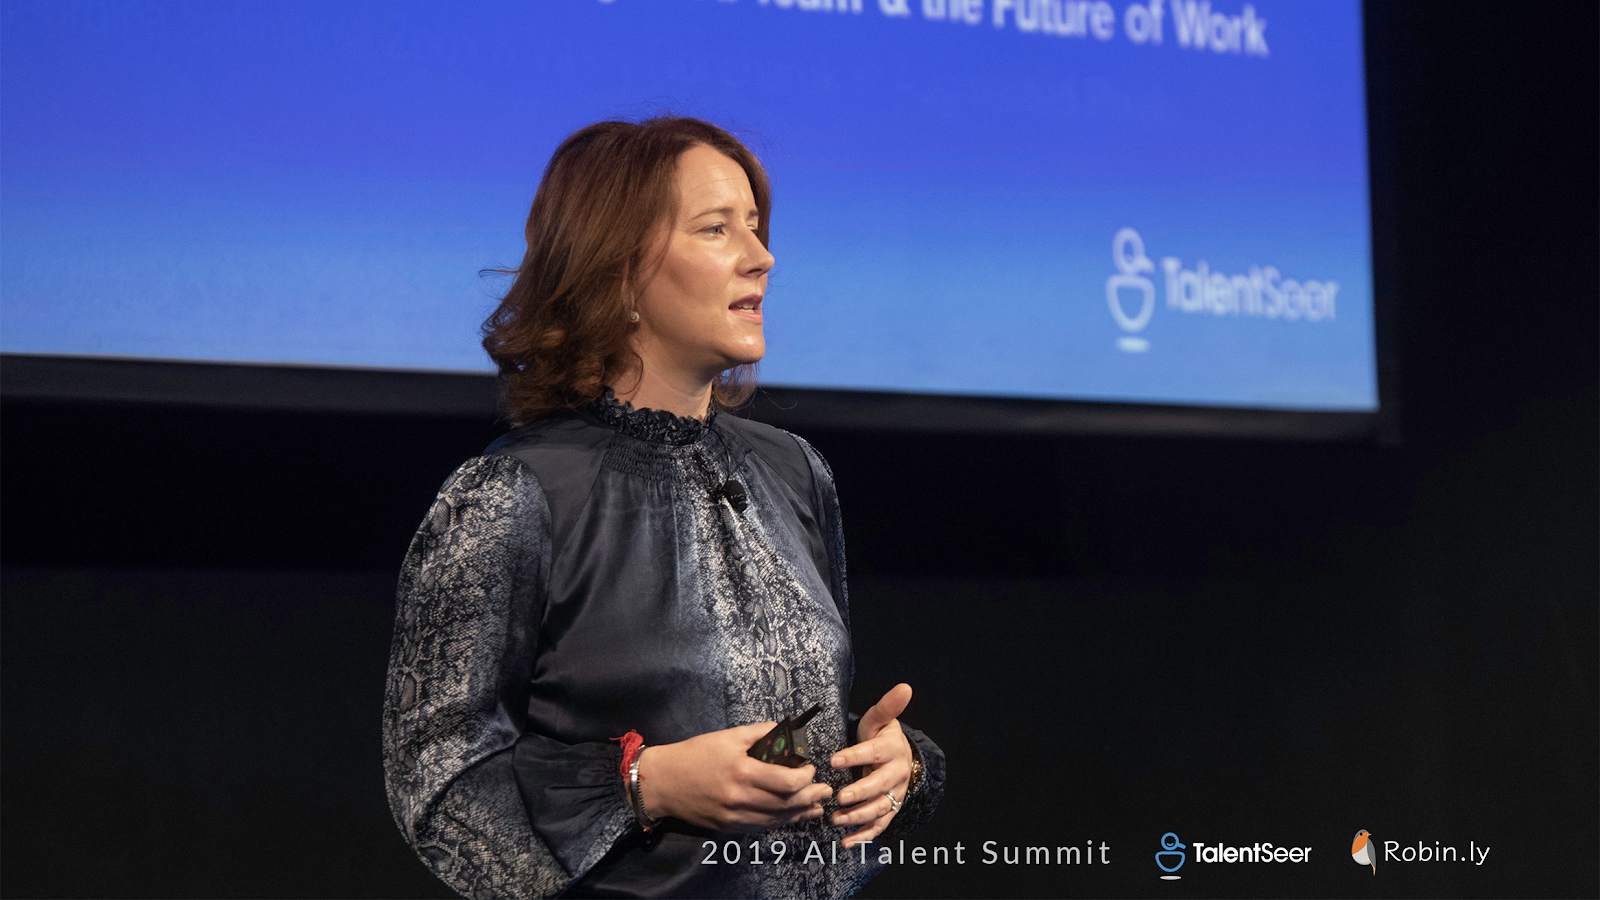 Margaret Laffan, VP of Business Development @ TalentSeer & Robin.ly - 2019 AI Talent Summit Highlights: Building Teams for The Future of AI